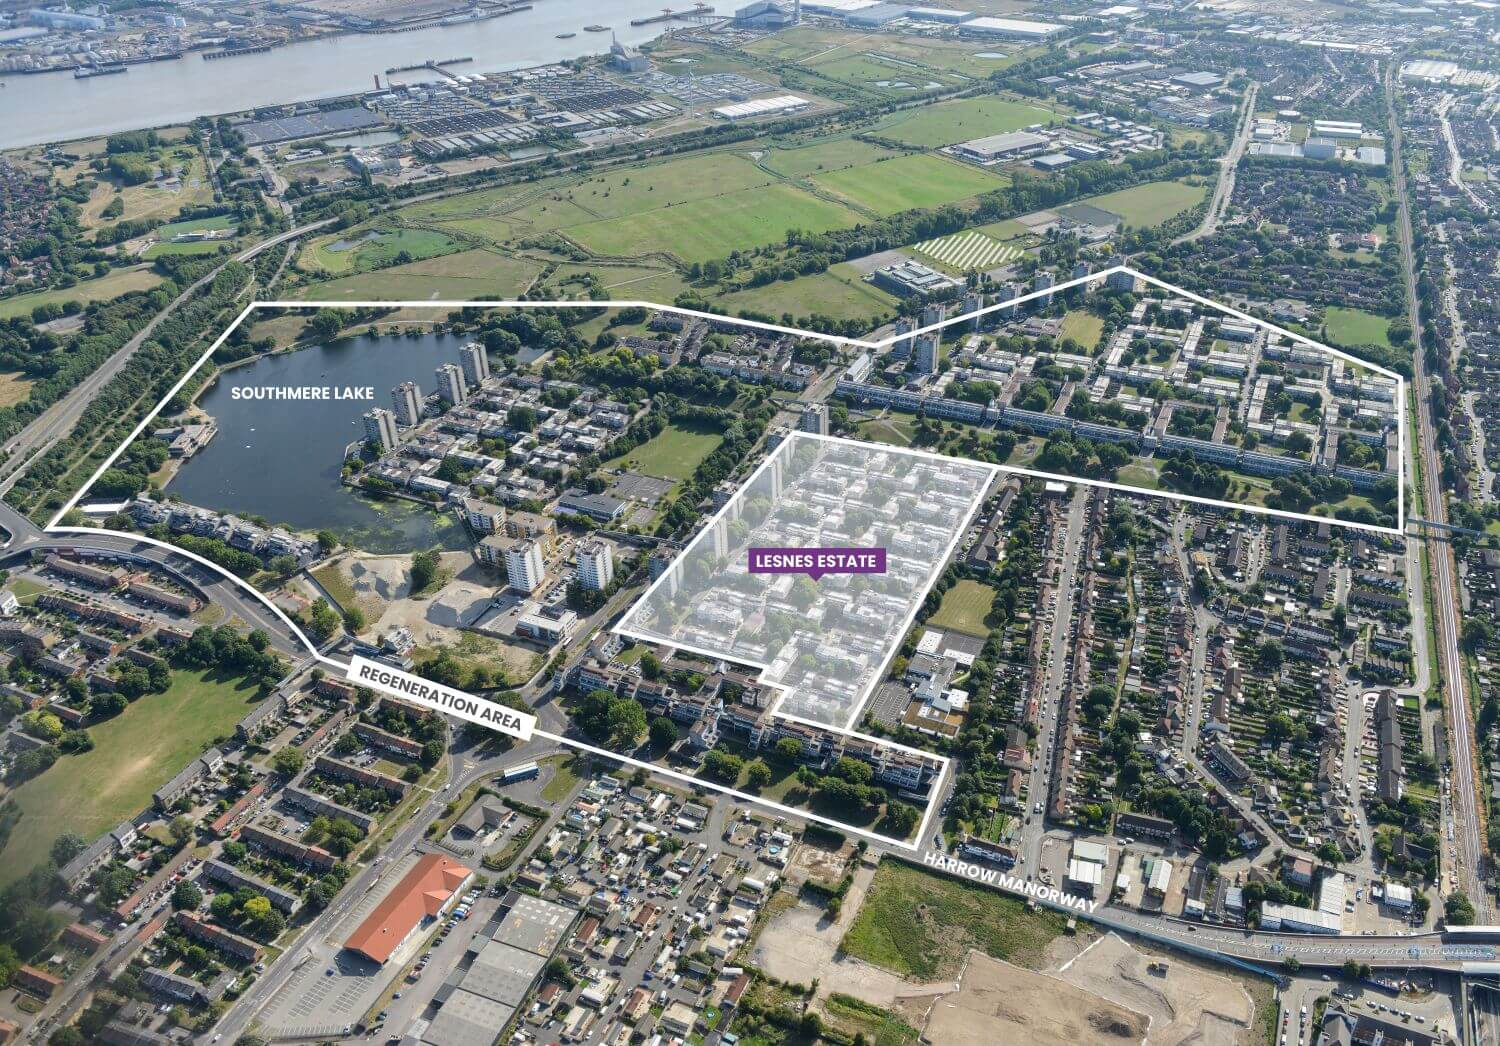 Aerial photo showing the South Thamesmead regeneration area